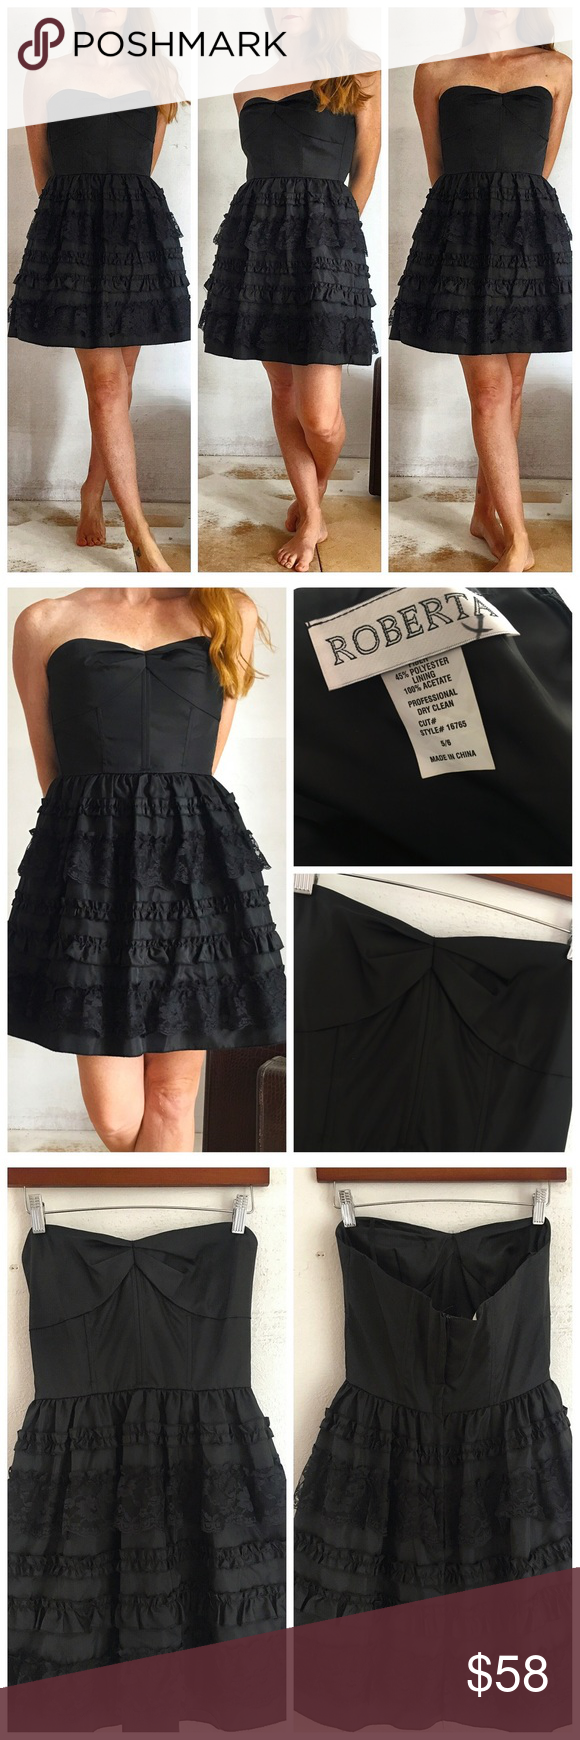 Vintage roberta party dress size xs in my posh closet